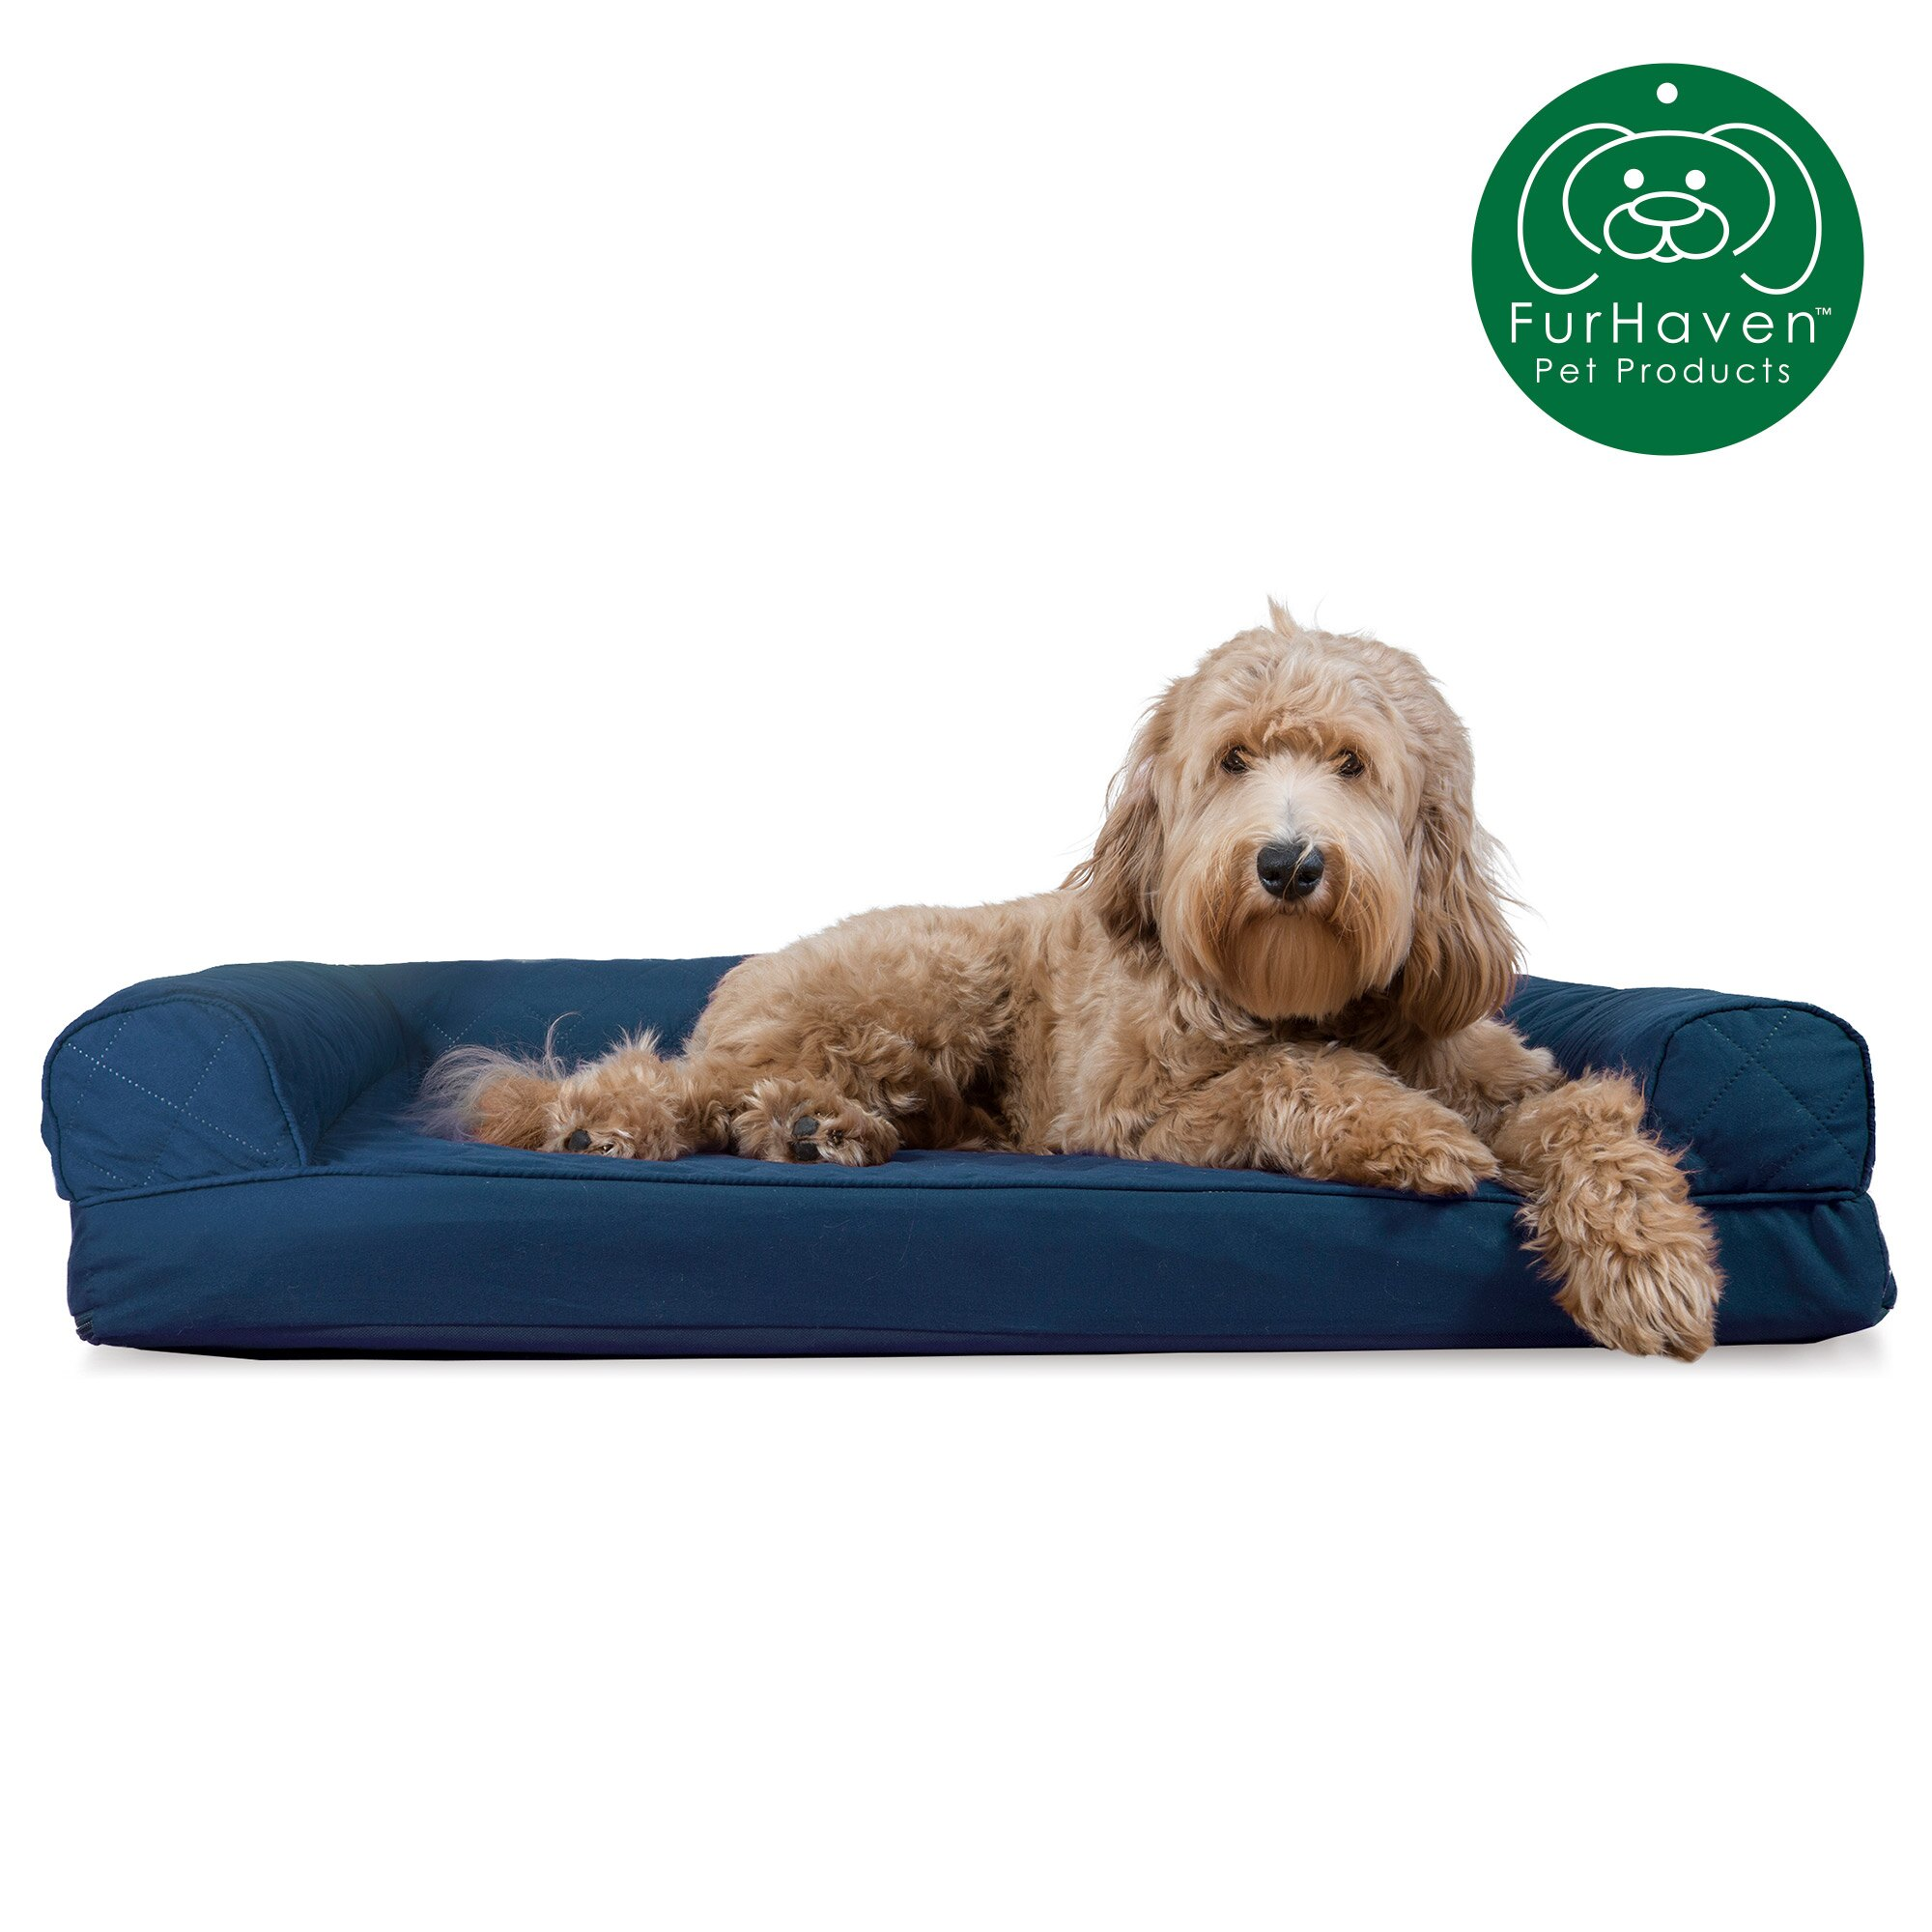 Outstanding Furhaven Pet Dog Bed Quilted Cooling Gel Sofa Pet Bed For Dogs Cats Available In Multiple Colors Sizes Gmtry Best Dining Table And Chair Ideas Images Gmtryco